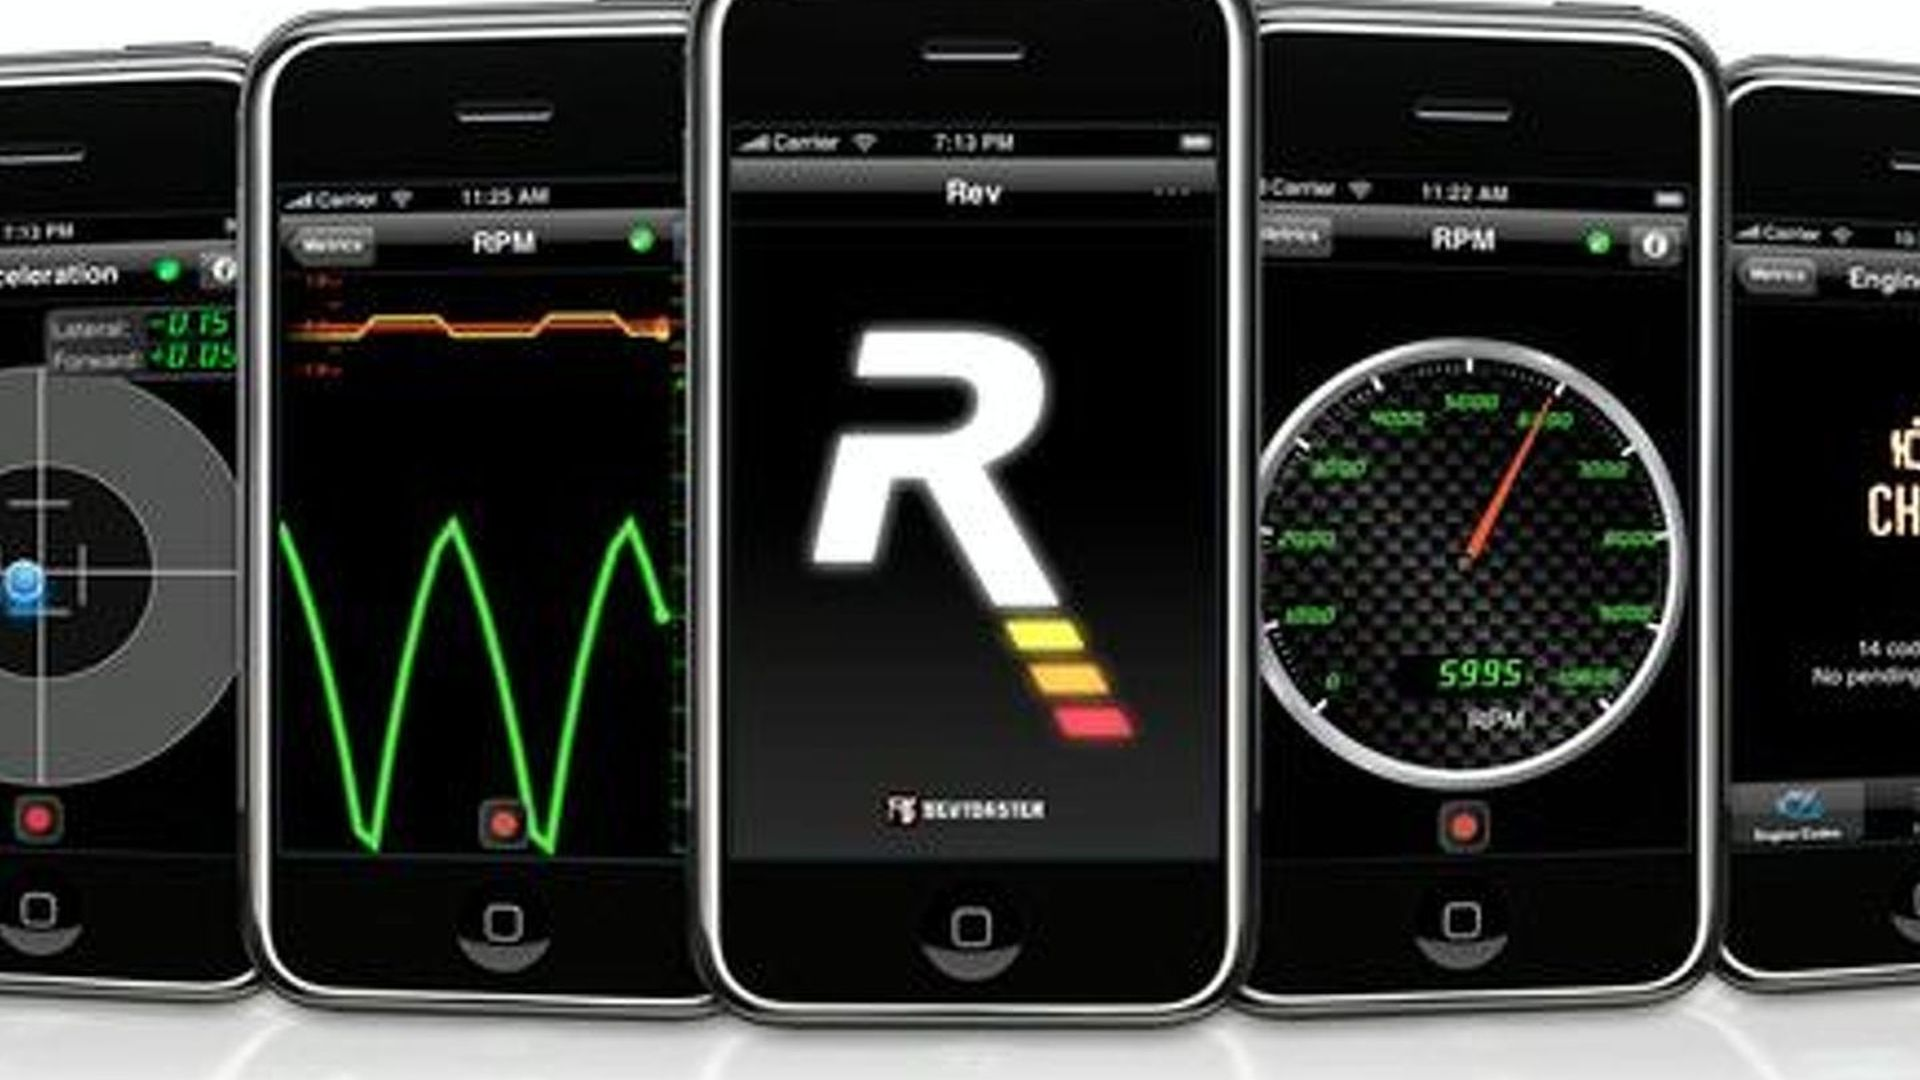 REV App Turns iPhone Into Performance Driving and OBDII Diagnostics Tool